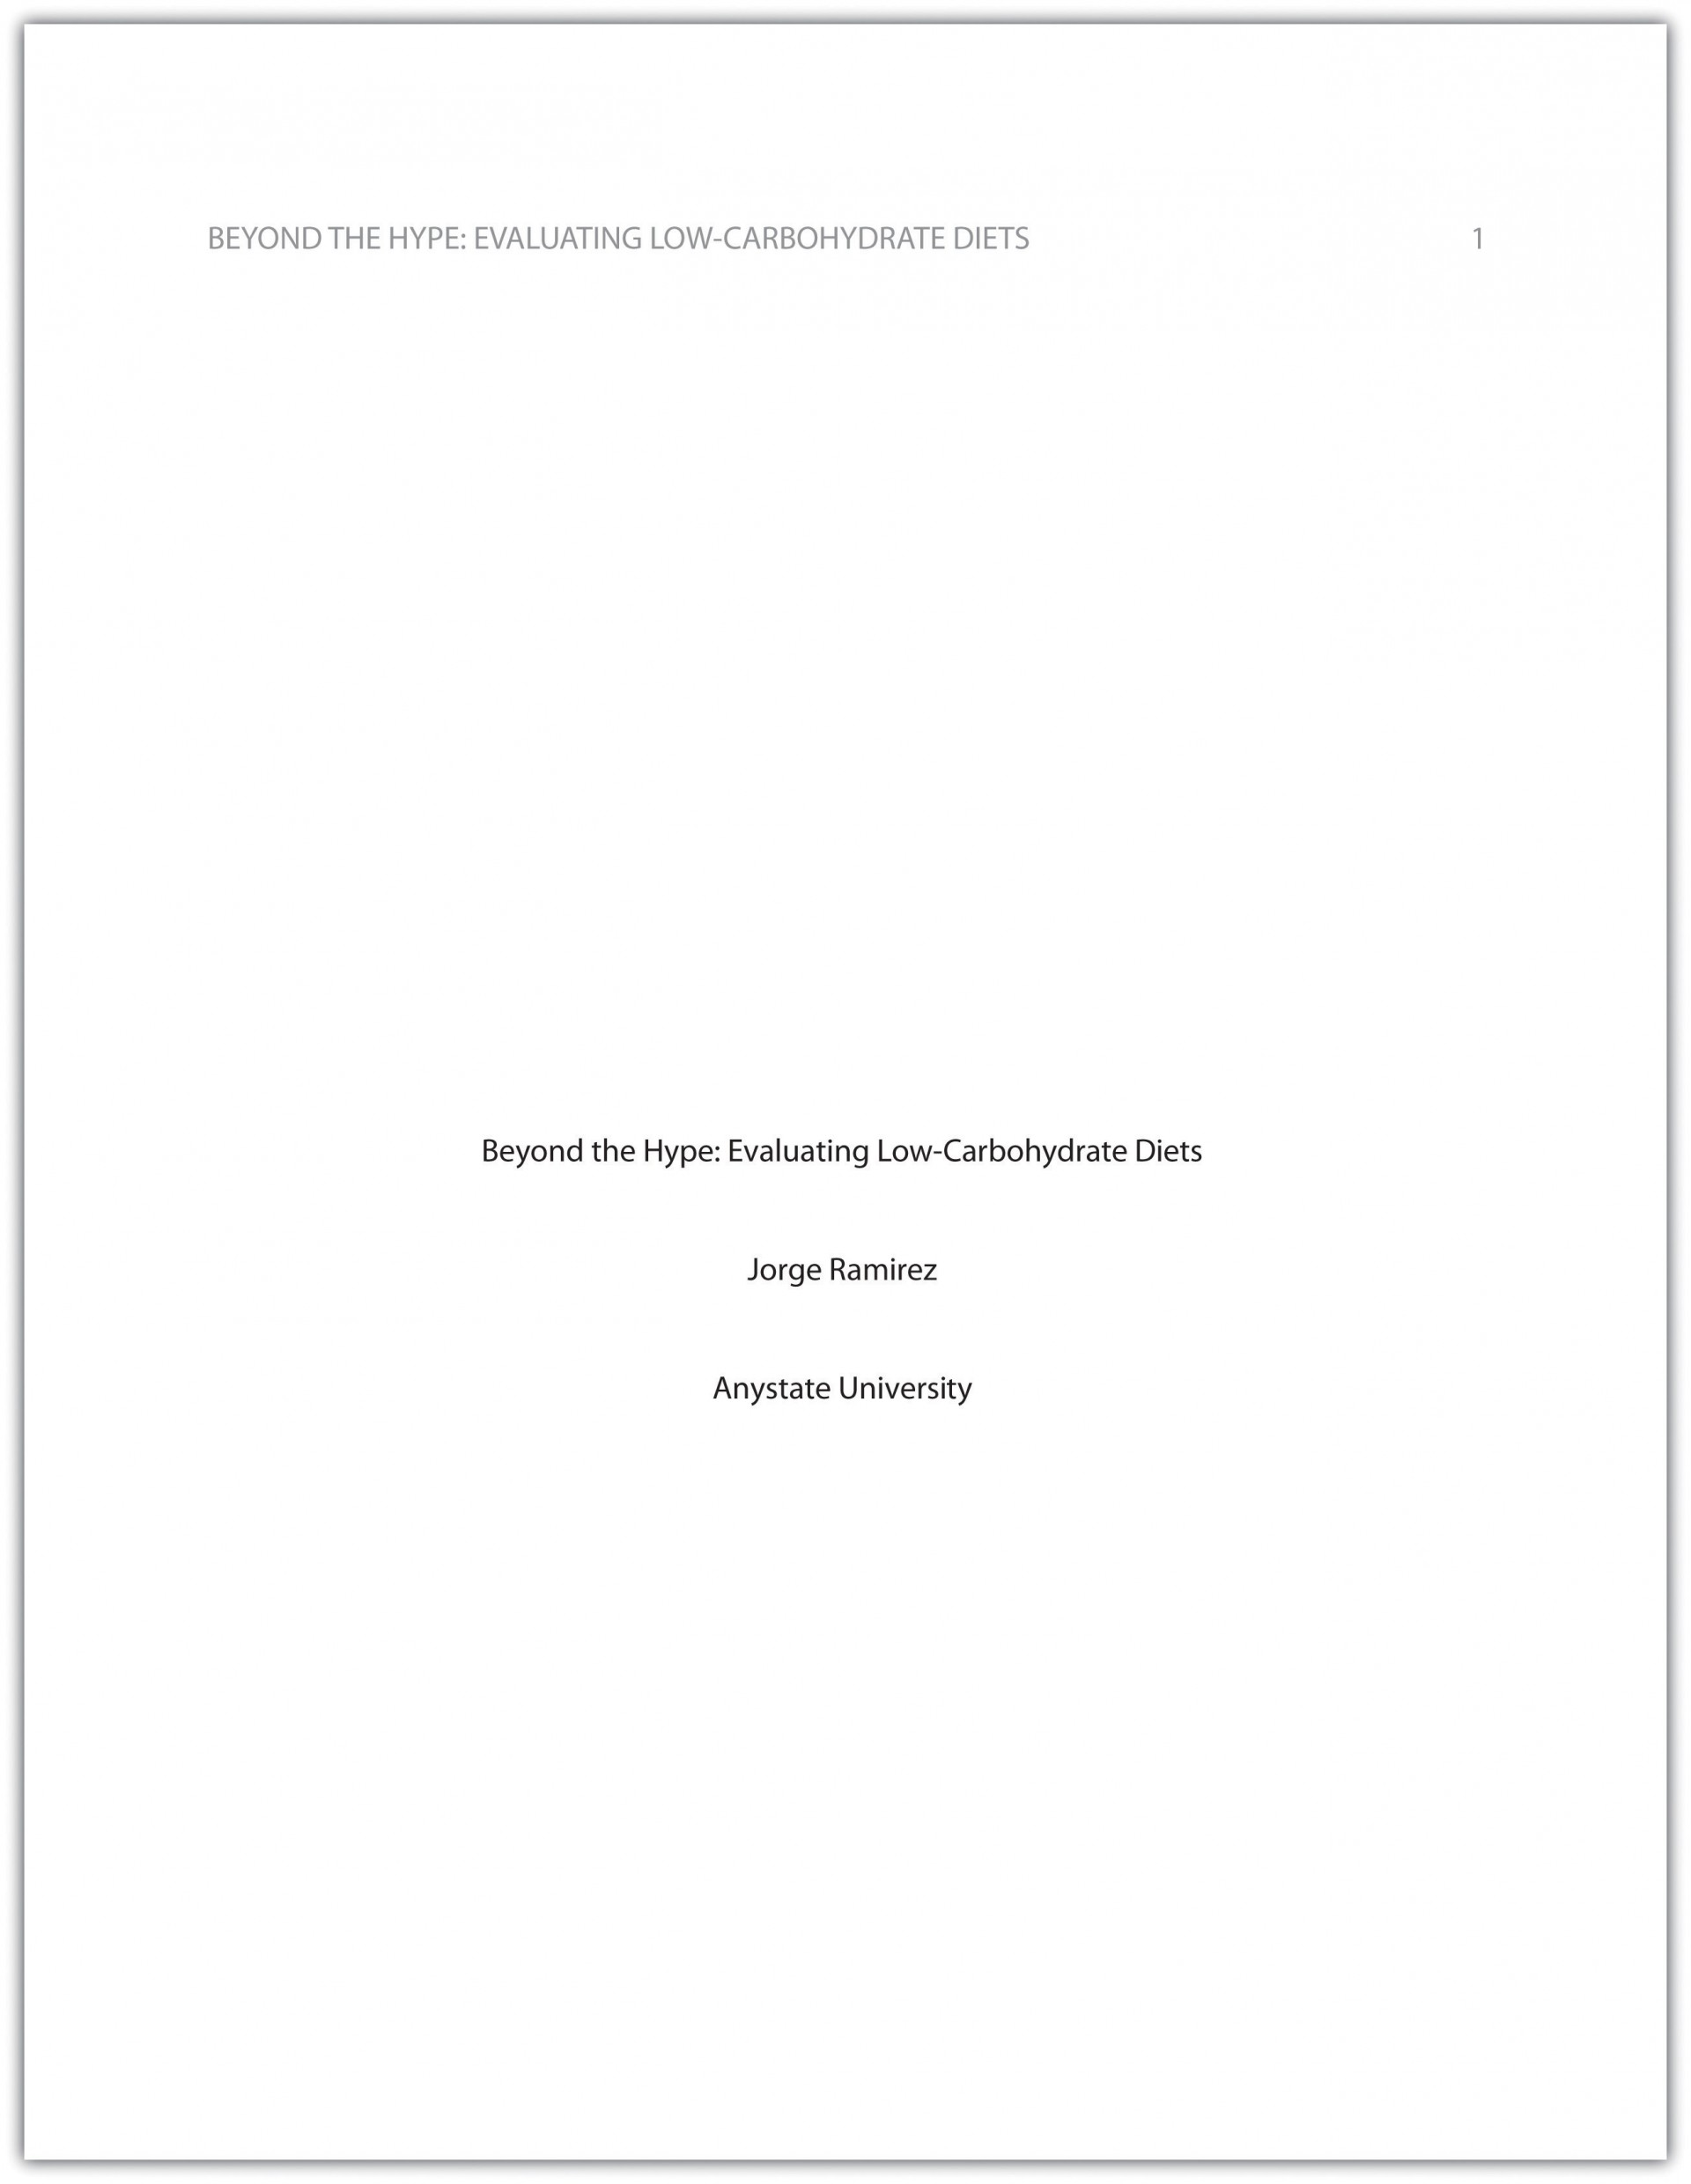 002 Cover Page For Research Paper Apa Format Incredible How To Do A 1920